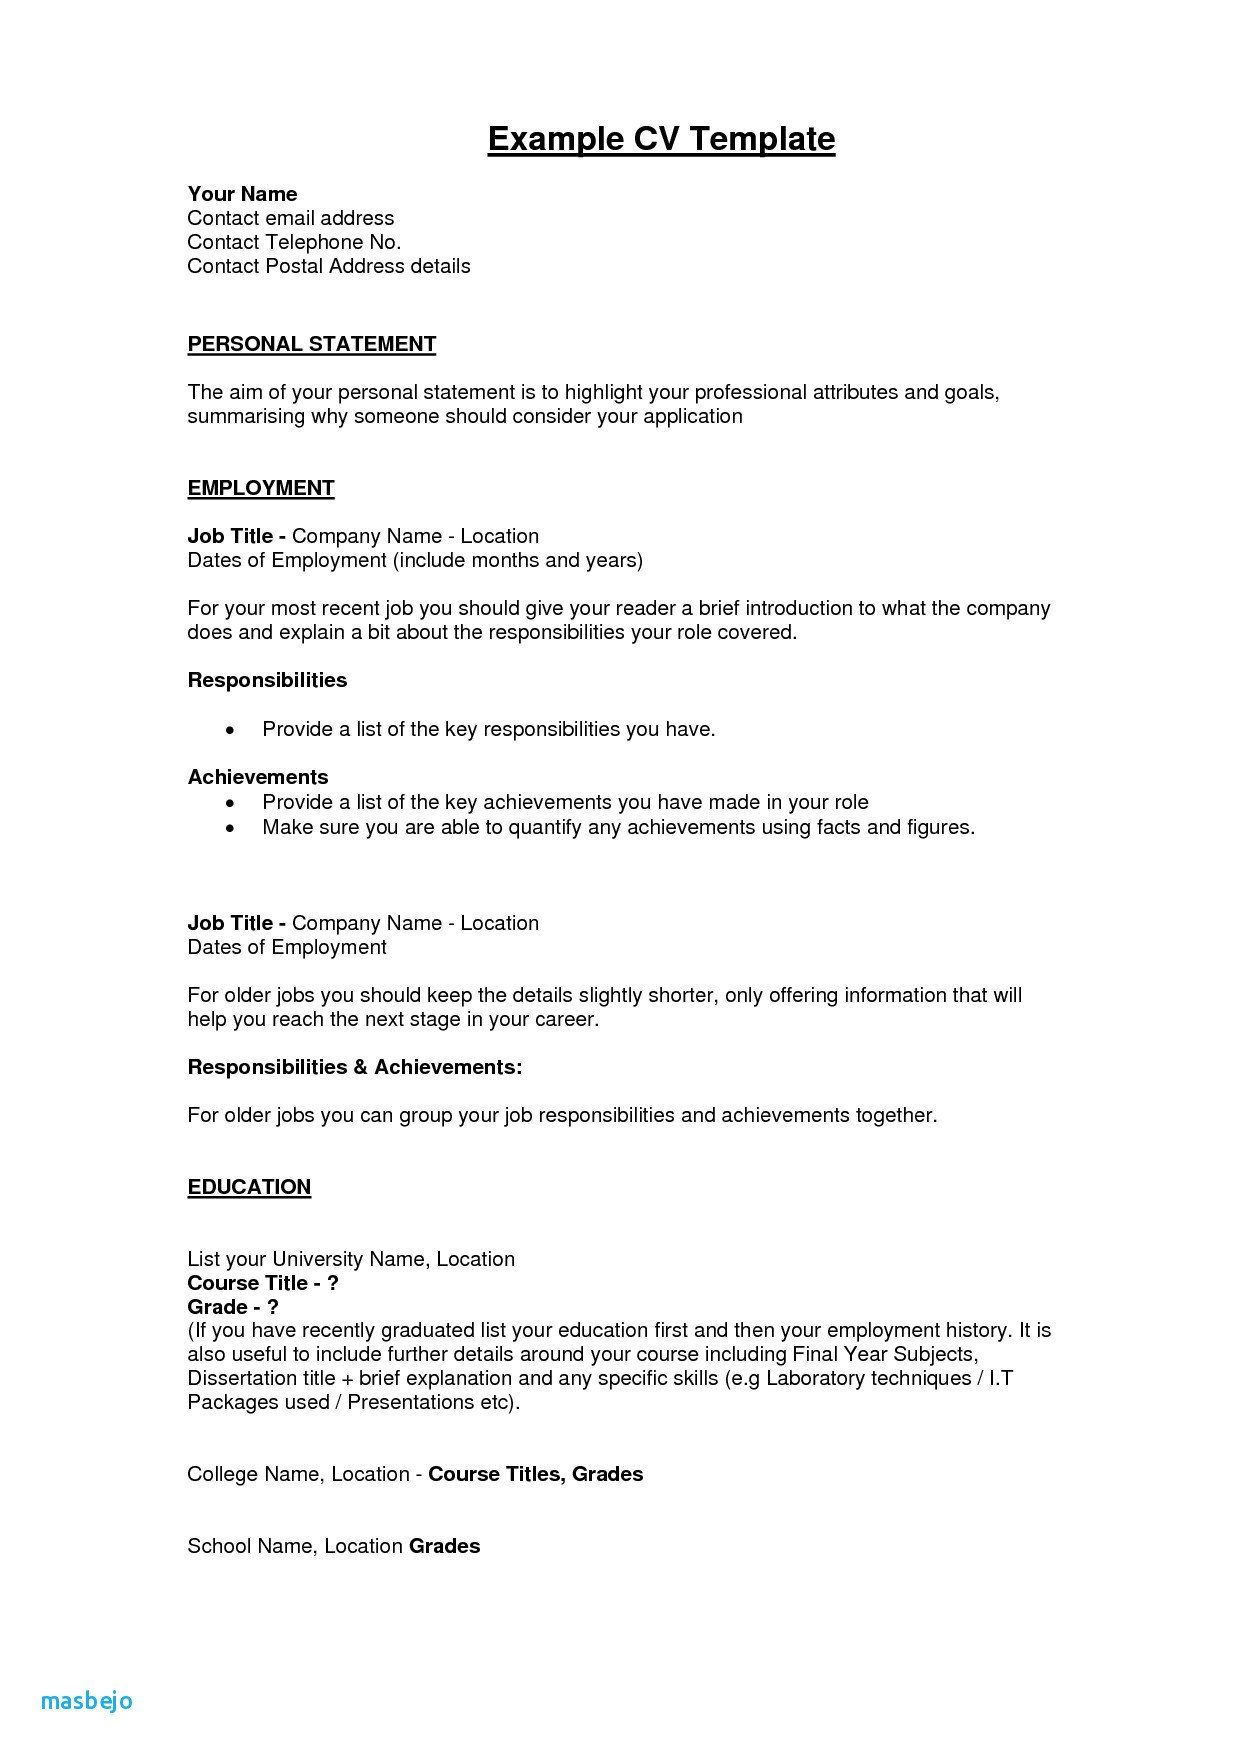 What File Type Should My Resume Be In Awesome Example